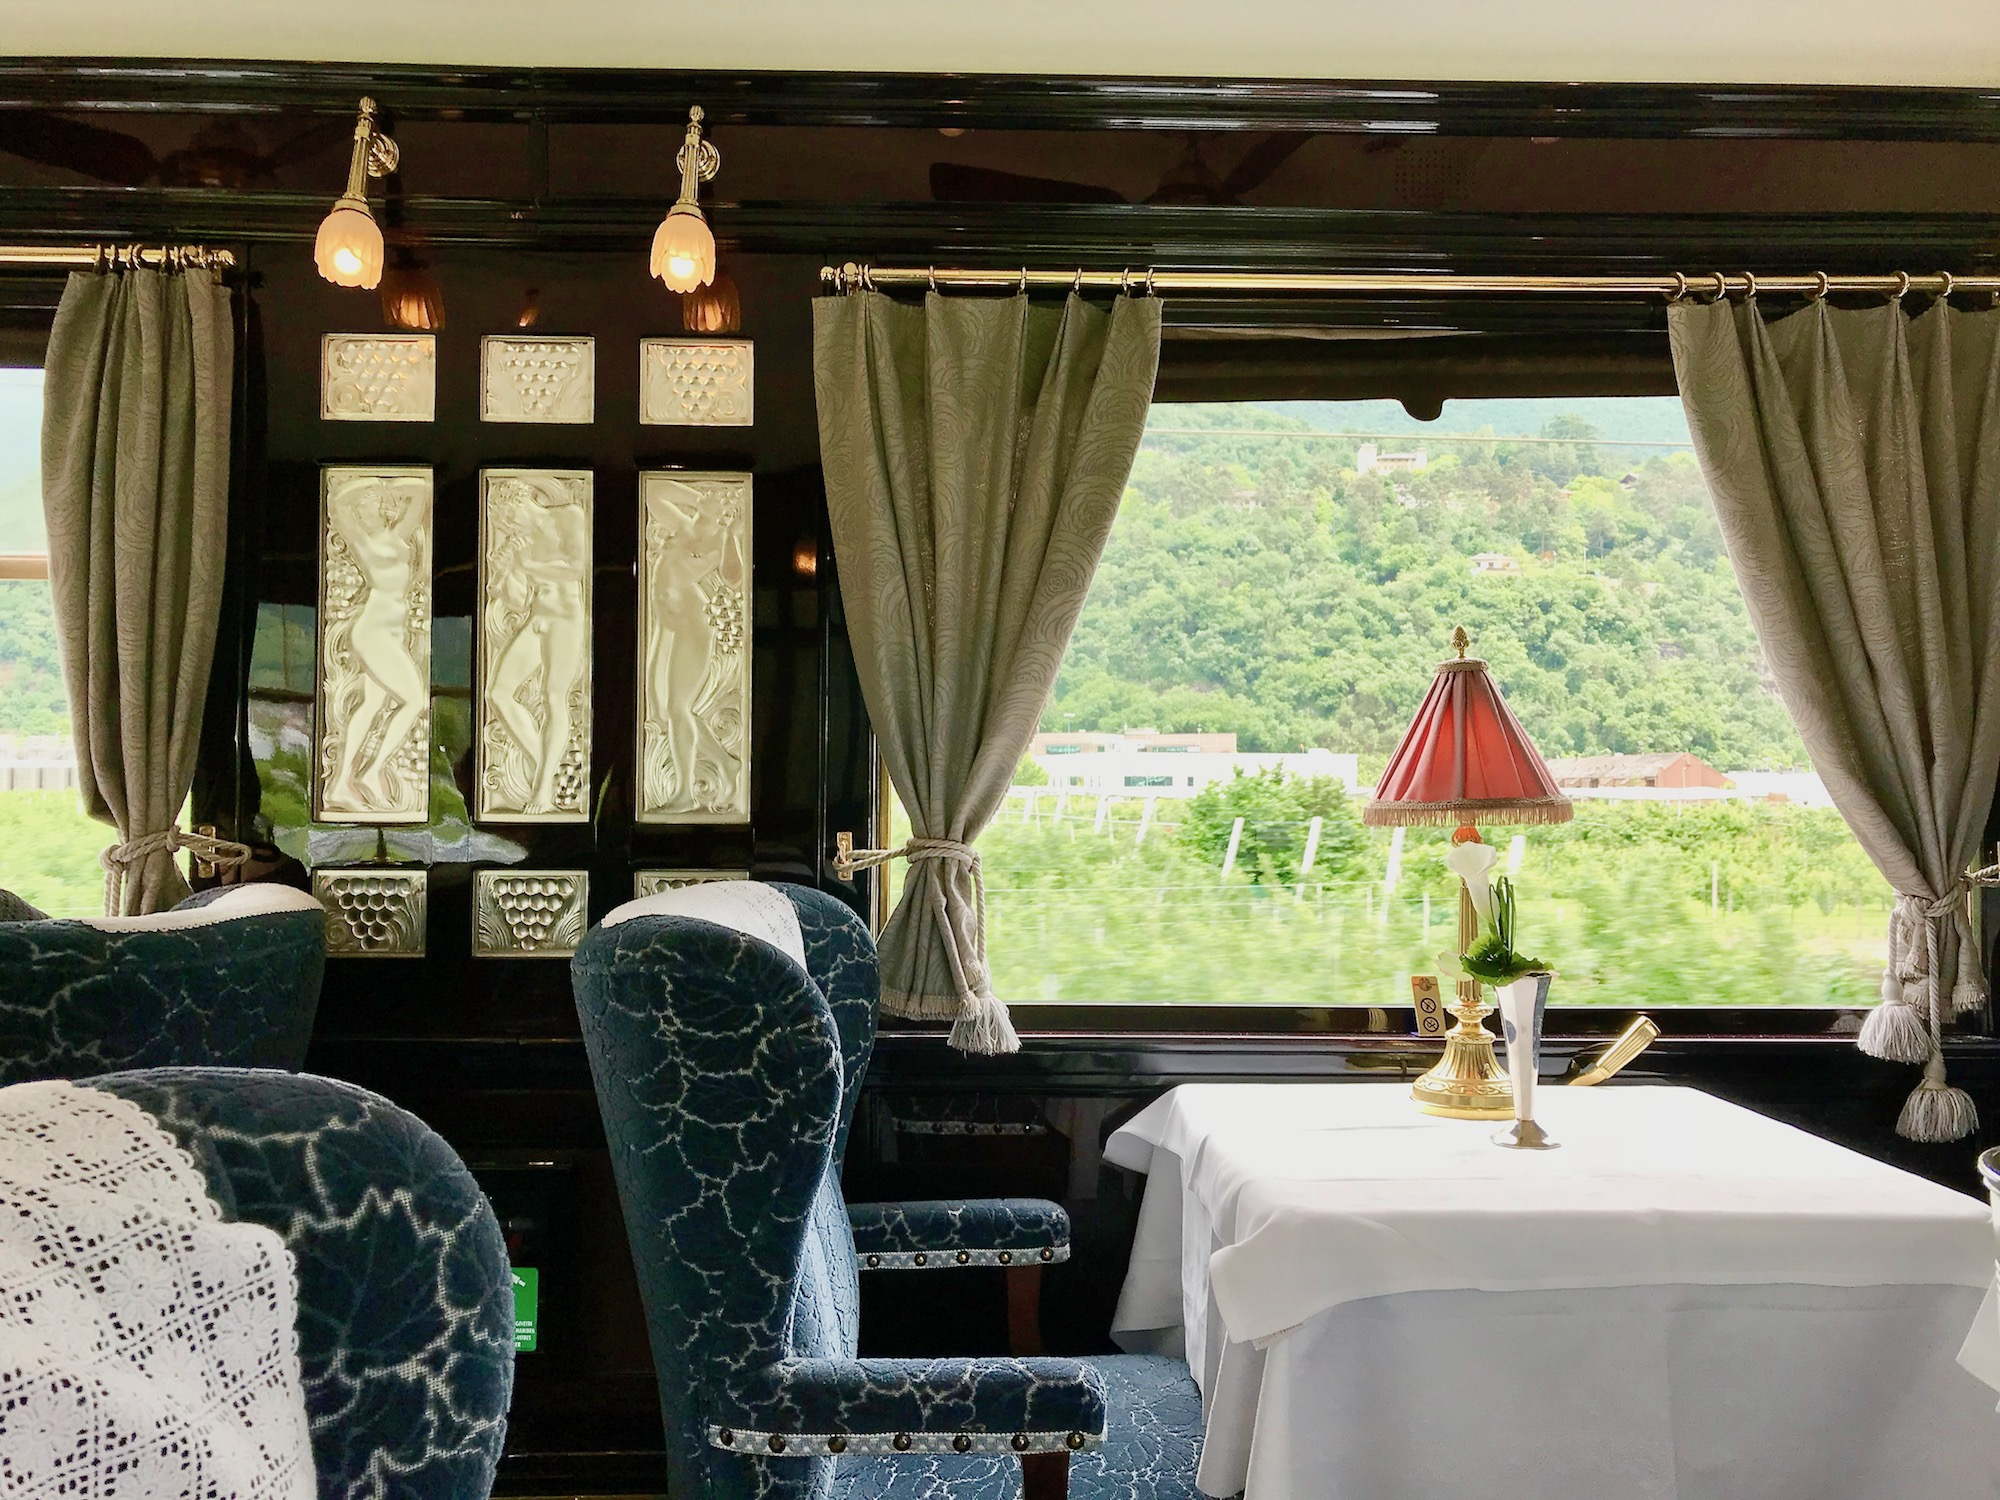 The Côte D'Azur Dining car with its stunning Lalique glass panels.